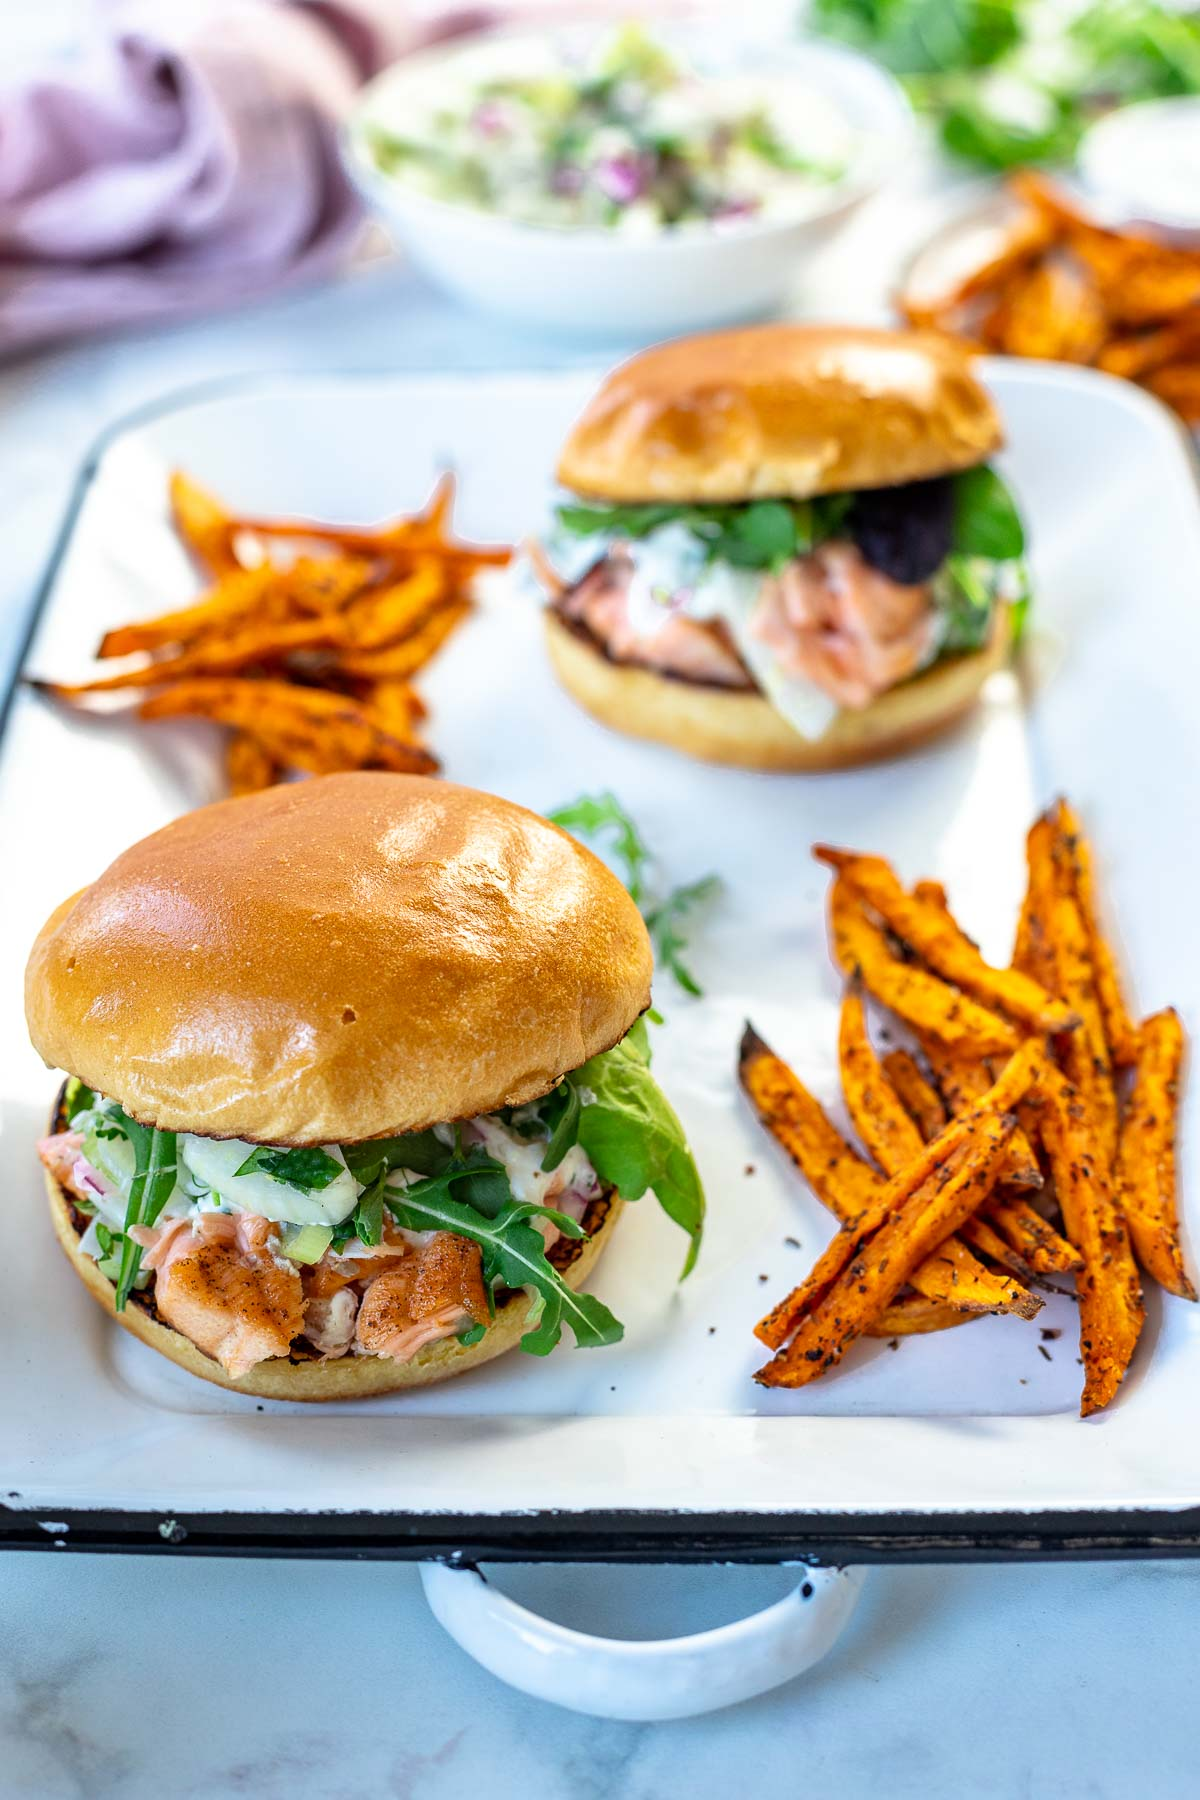 Pulled Salmon Burger with Caper-Lemon-Yoghurt Sauce